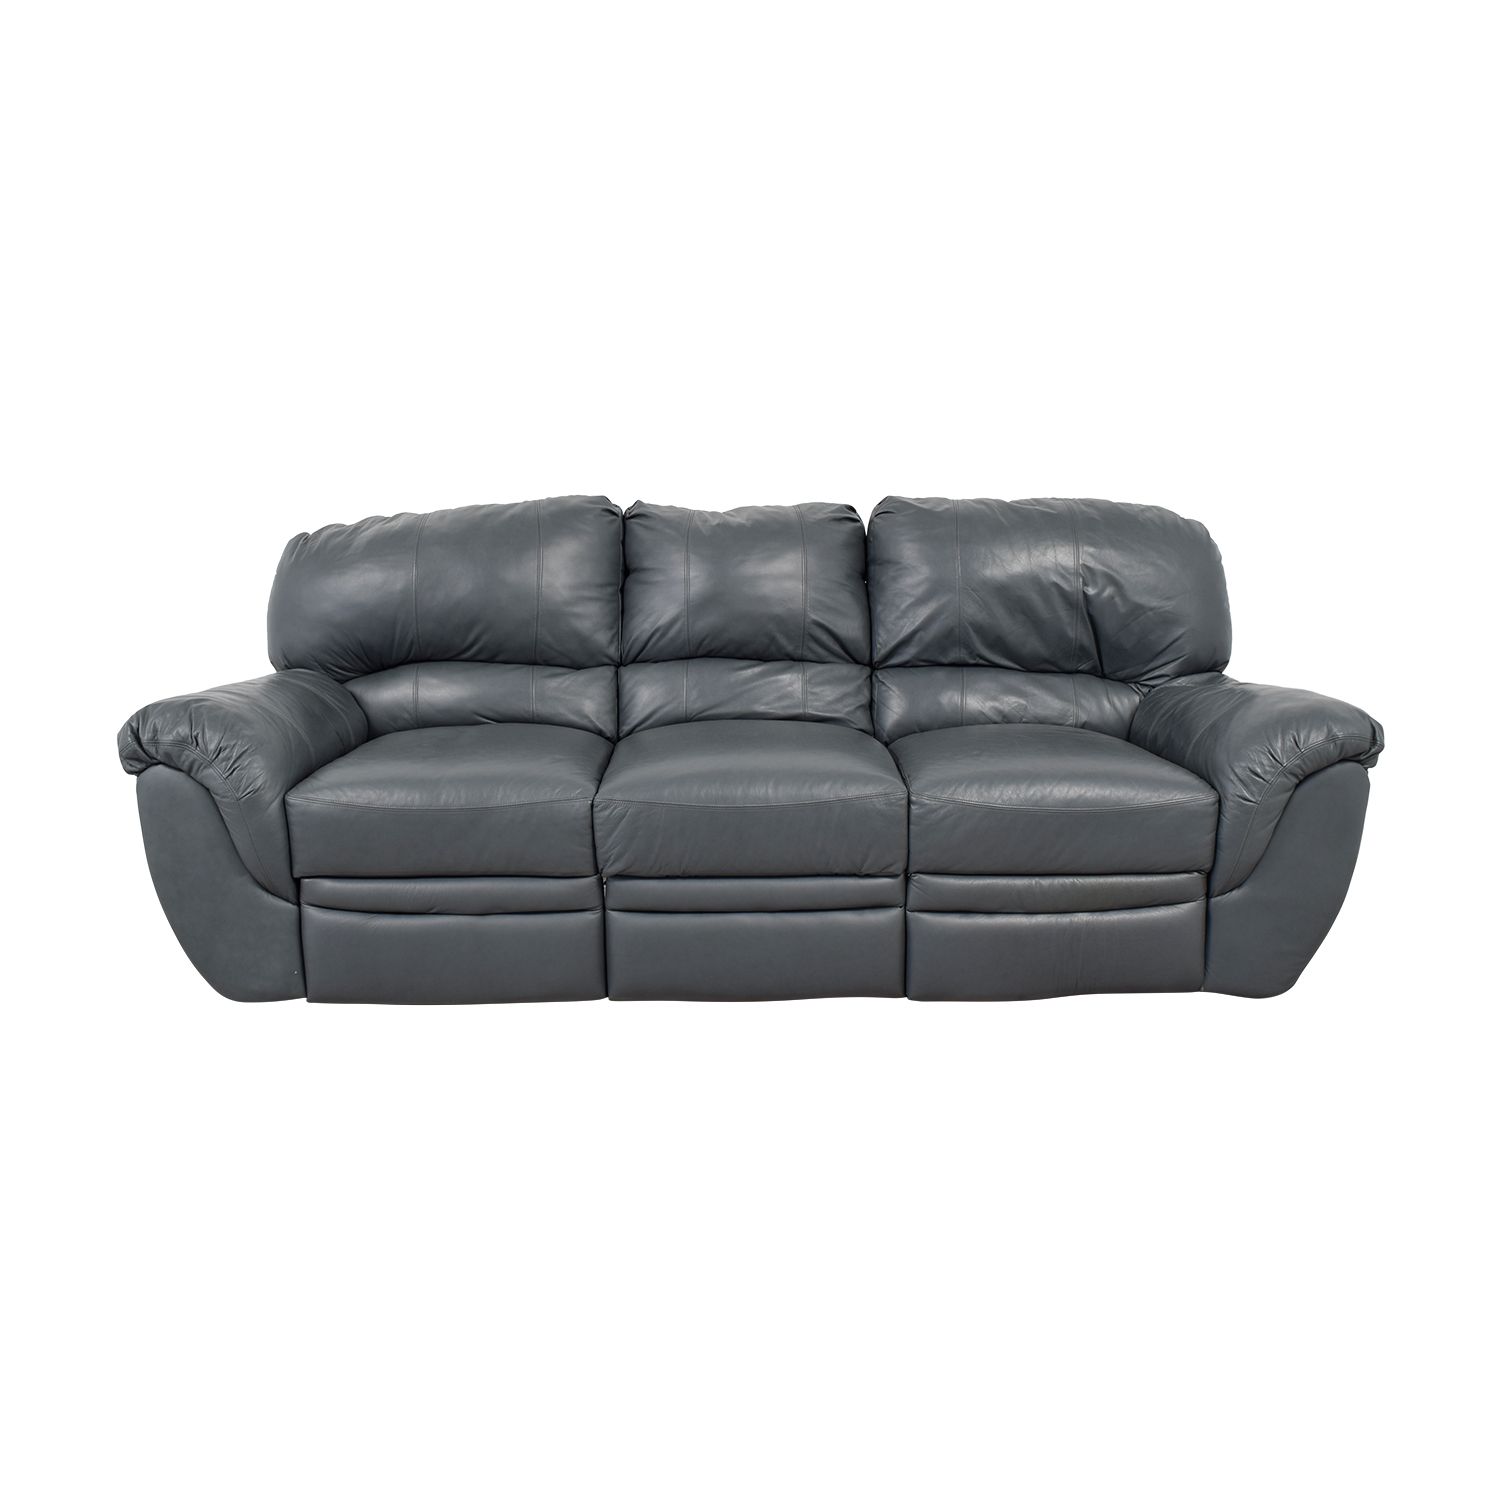 berkline rocker of tullran room costco living fy chairs leather recliner furniture awesome